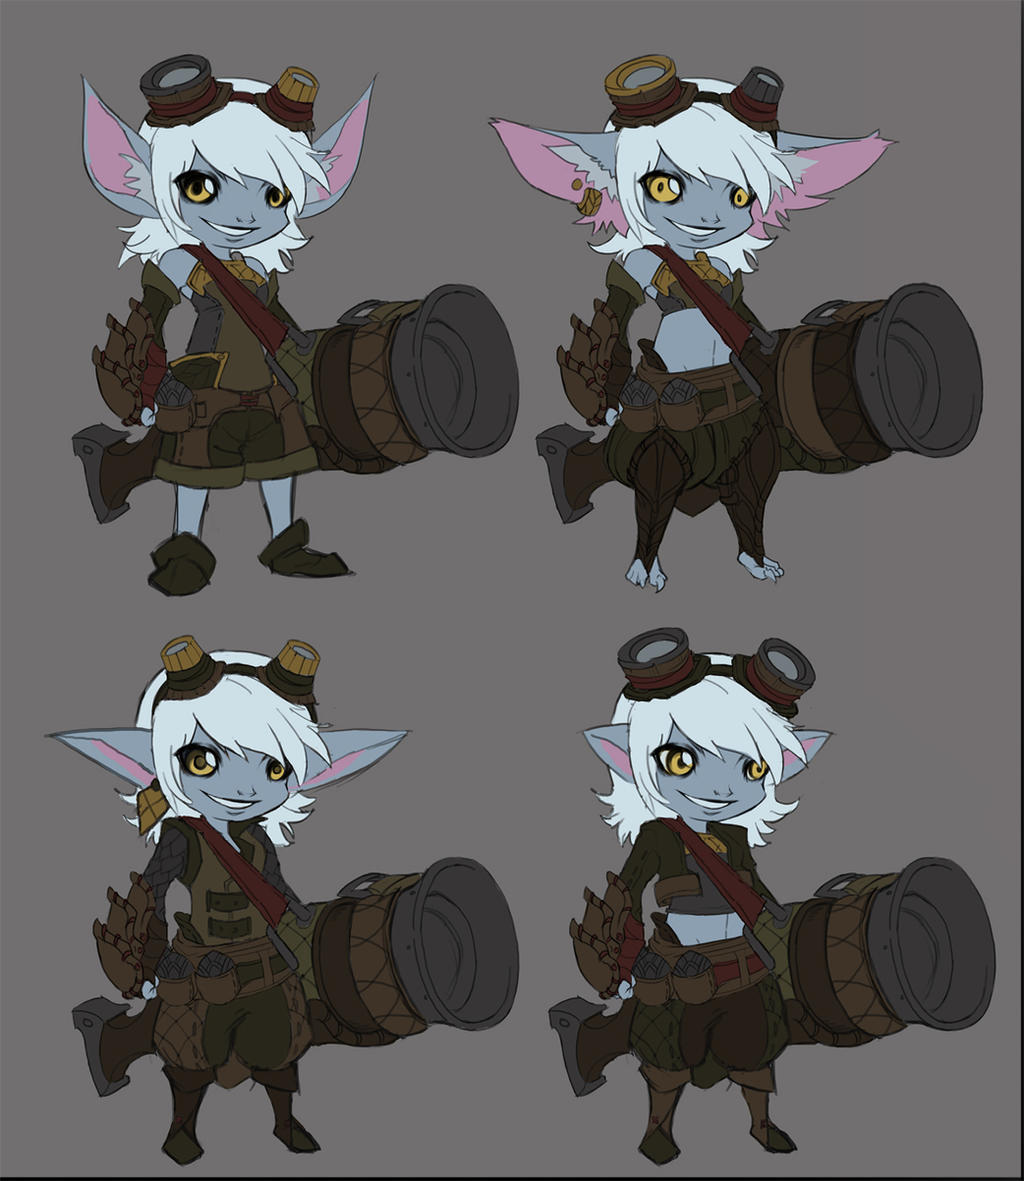 Tristana Rework Concepts by Lonewingy